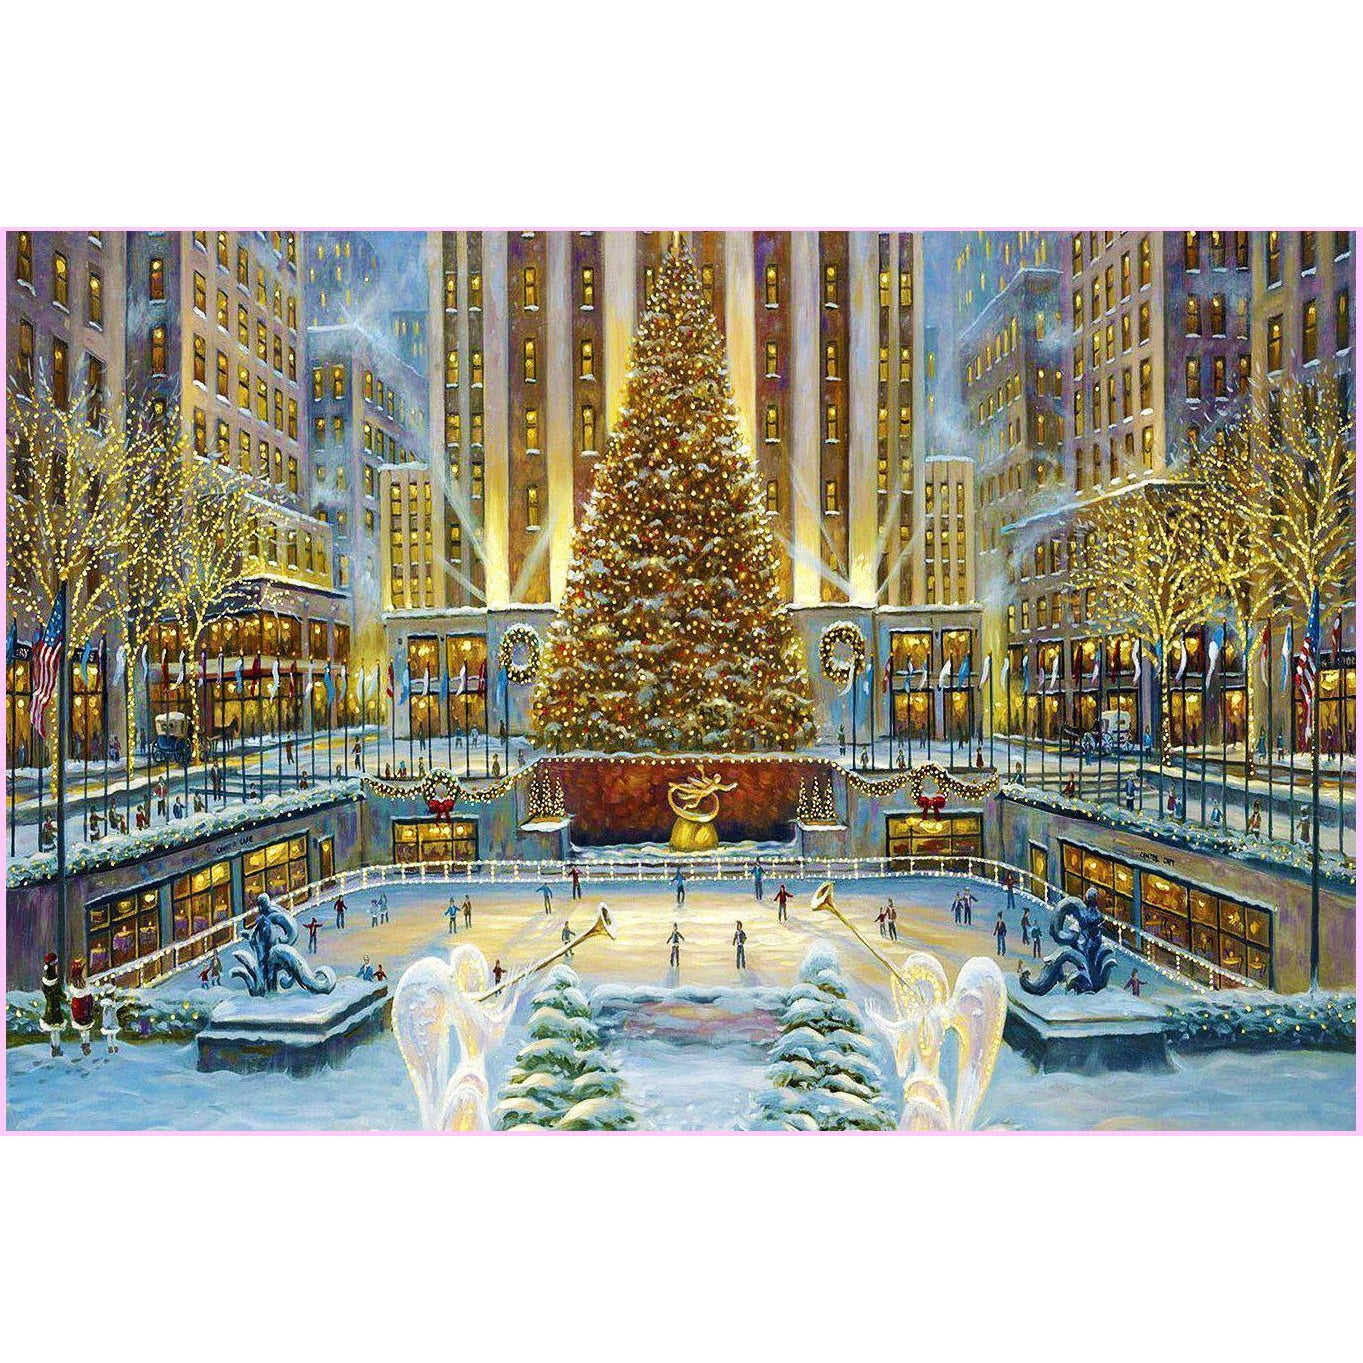 Christmas in the Big City-Diamond Painting Kit-30x40cm (12x16 in)-Square-Heartful Diamonds